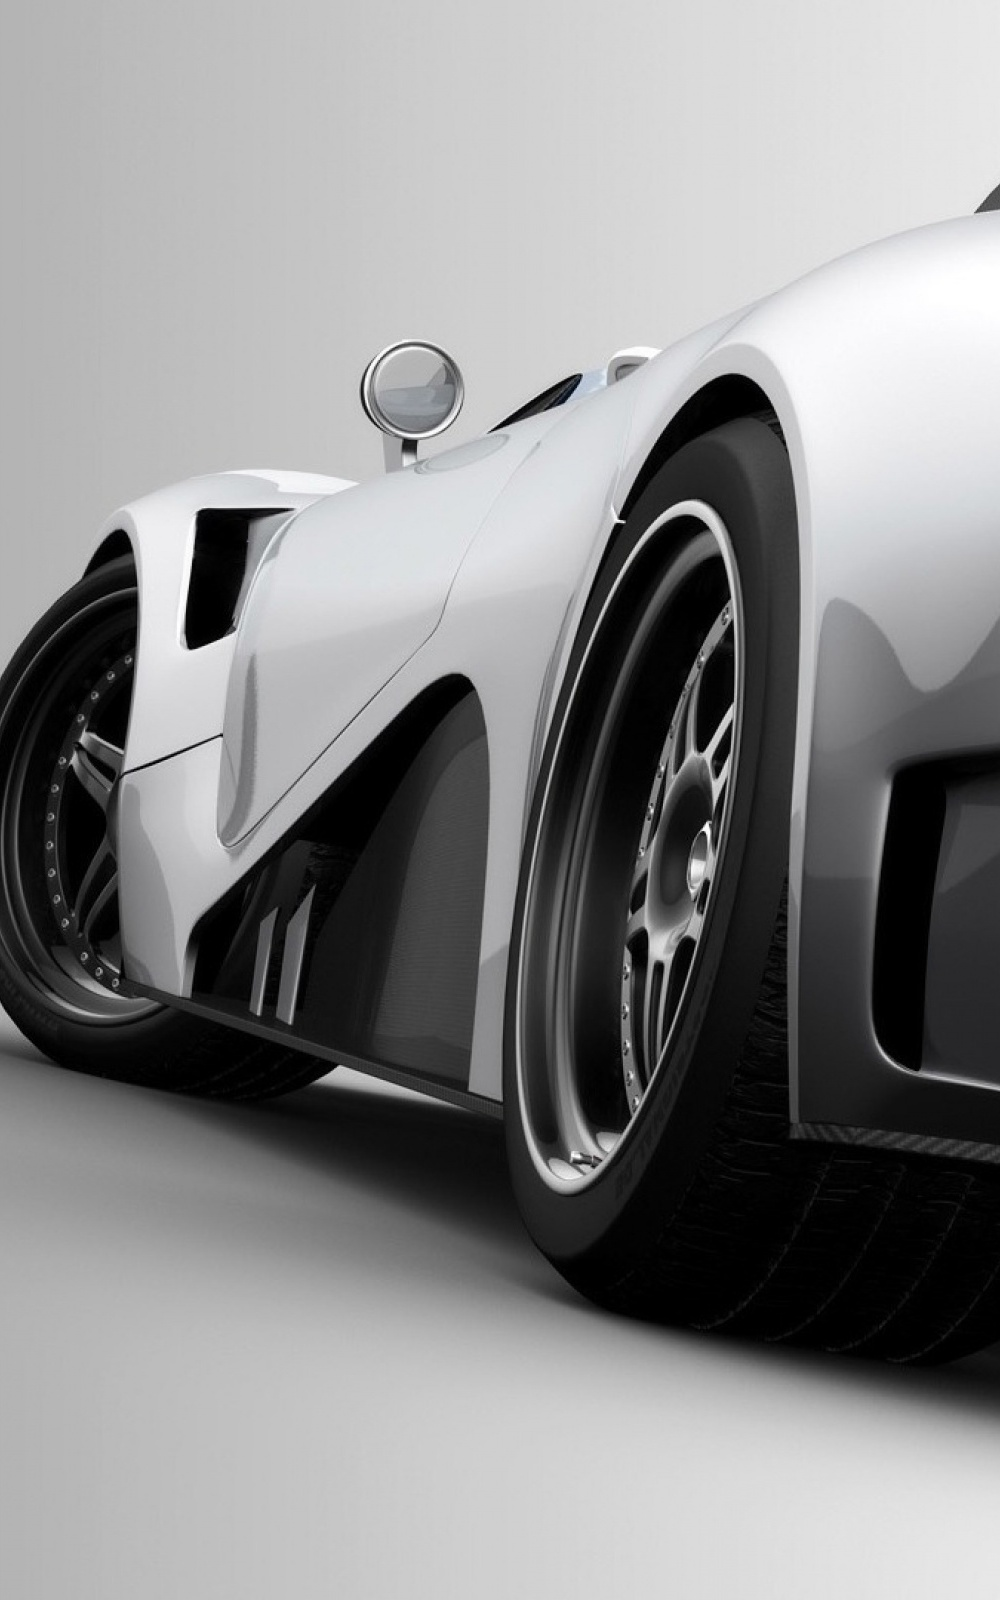 Cars Wallpaper Black And White , HD Wallpaper & Backgrounds